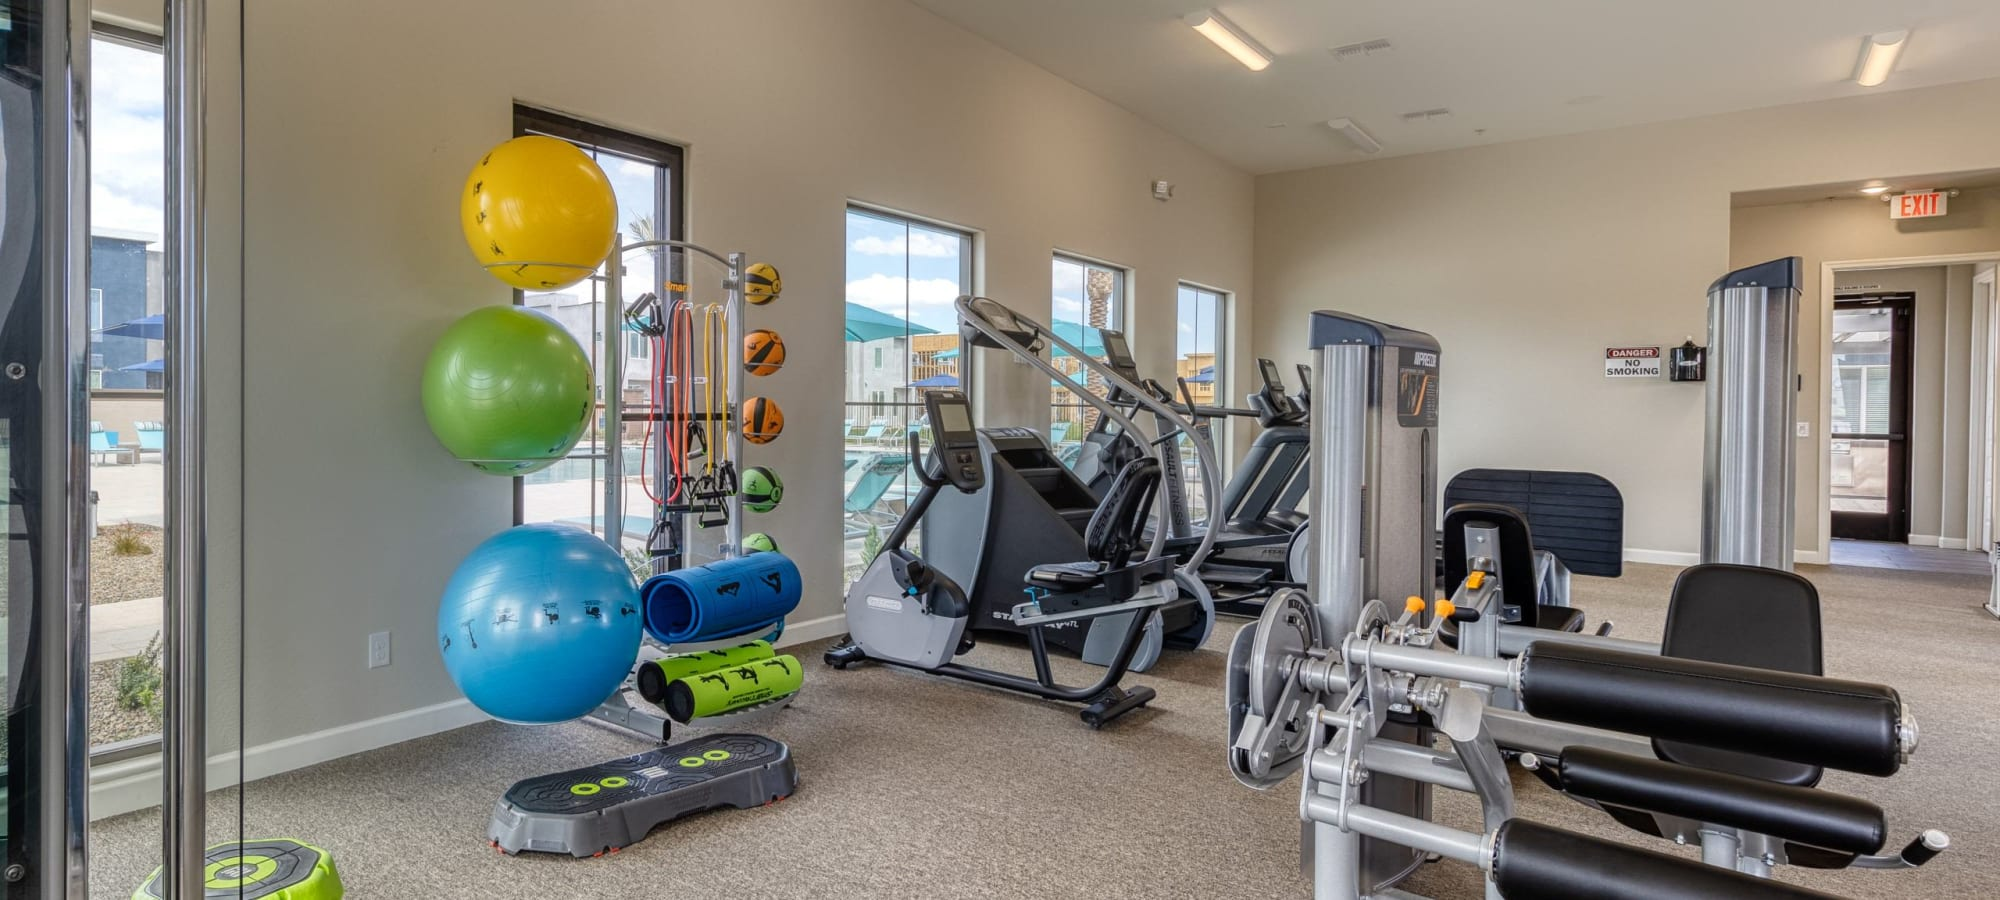 Fitness Center at Las Casas at Windrose in Litchfield Park, Arizona